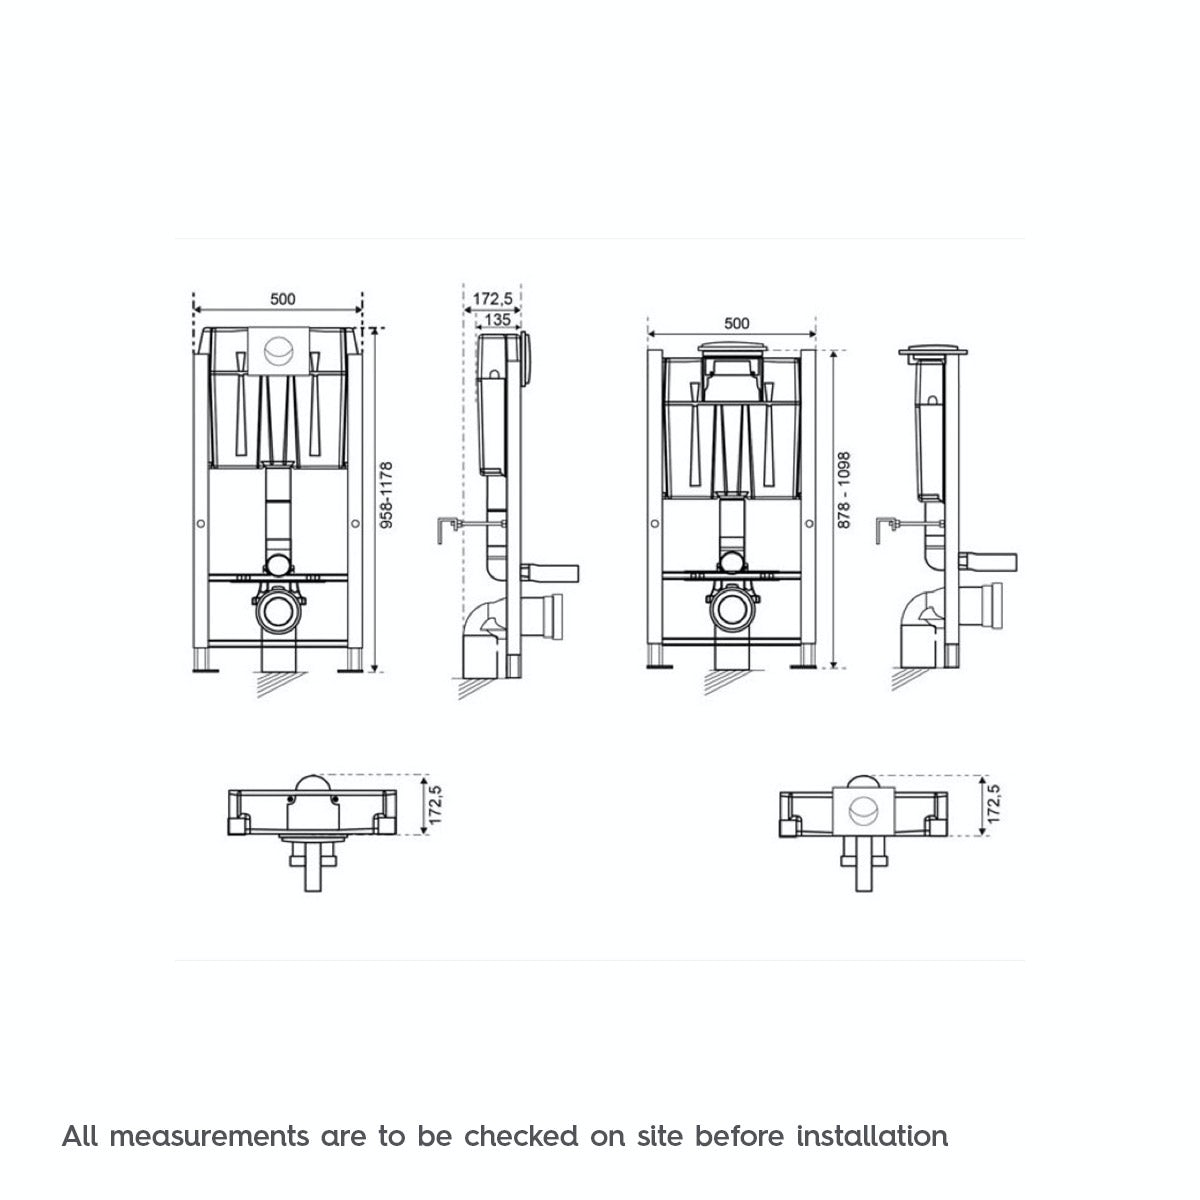 dimensions for universal wall hung toilet frame with push button cistern